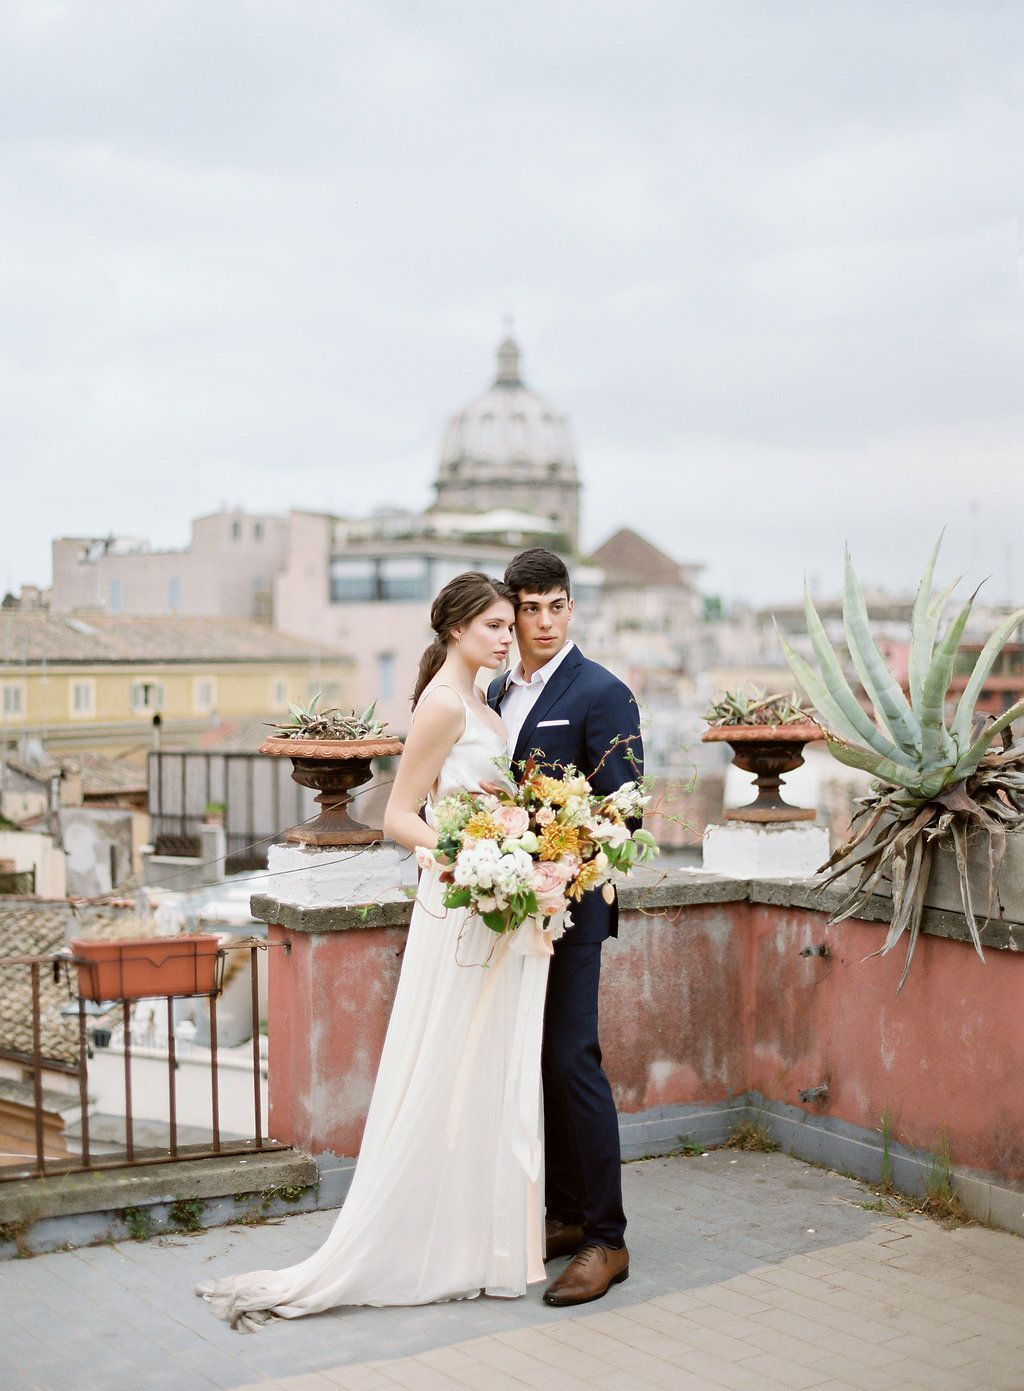 Vicki_Grafton_Photography_Rome_Italy_Wedding_Photographer_2017-151